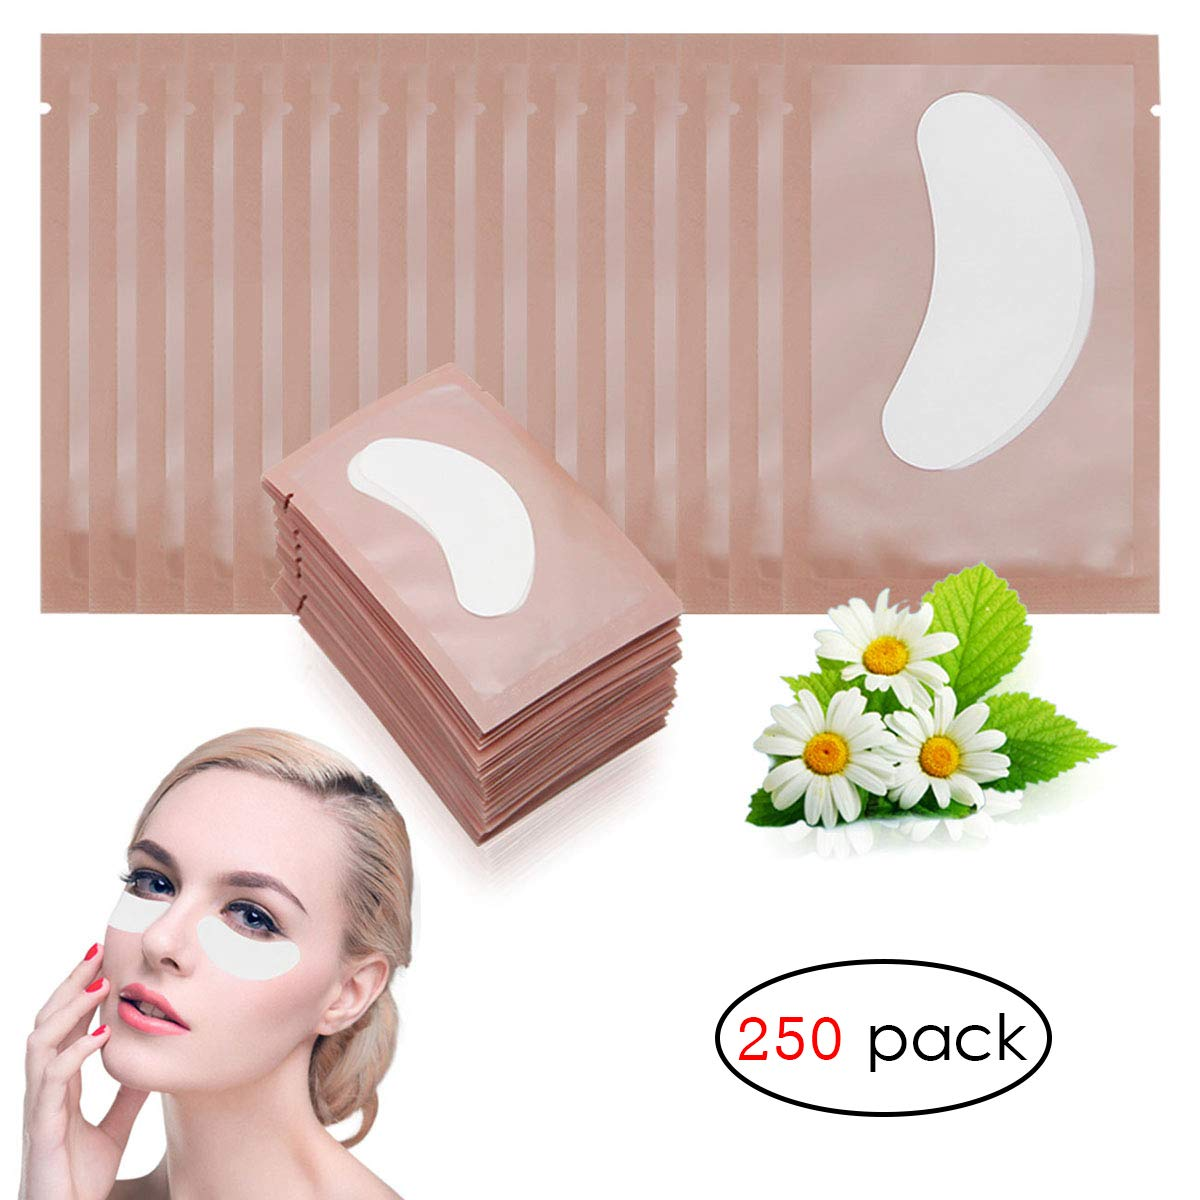 Adecco LLC 250 Pairs Under Eye Pads Lint Free Lash Extension Eye Gel Patches for DIY False Eyelash Extension Makeup,Eye Mask Beauty Tool